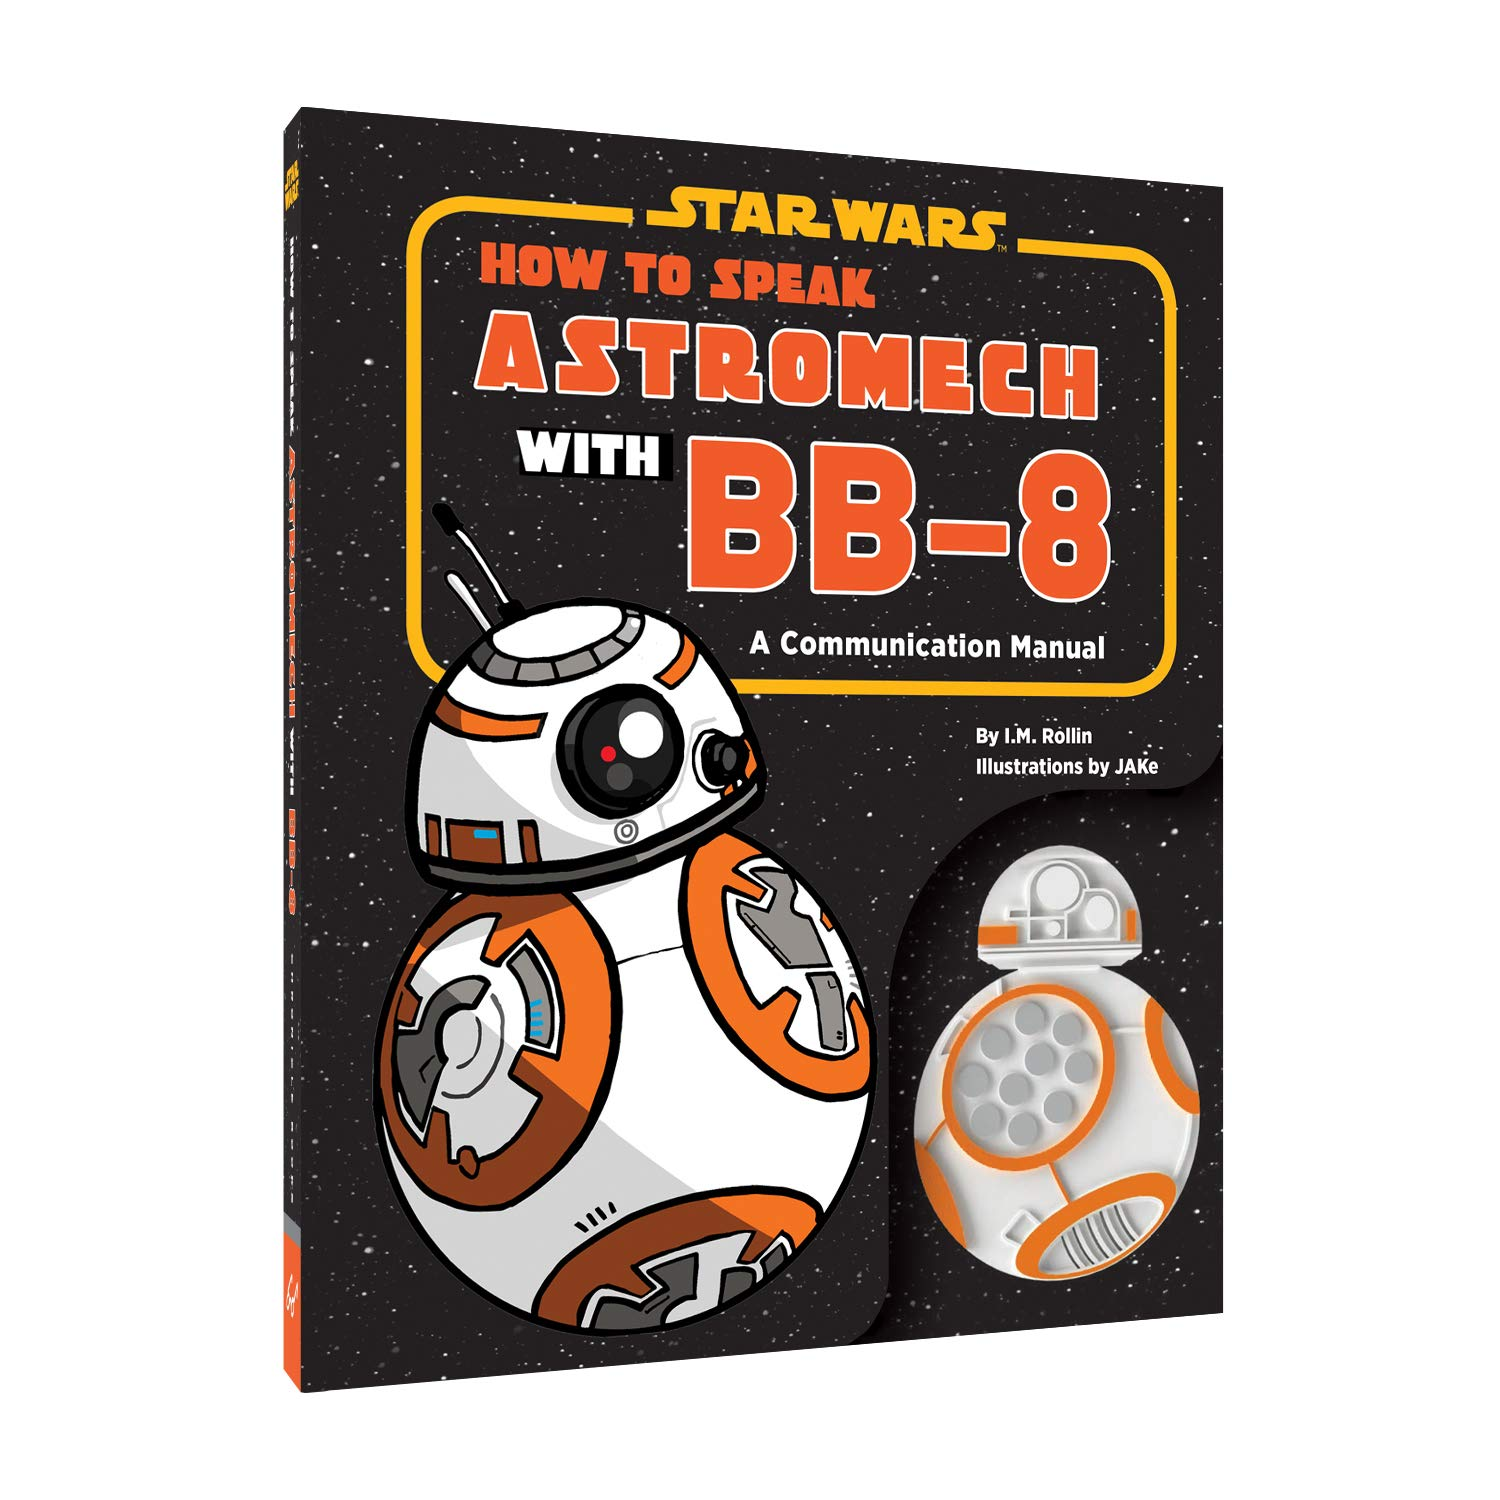 How to Speak Astromech with BB-8 (21.04.2020)